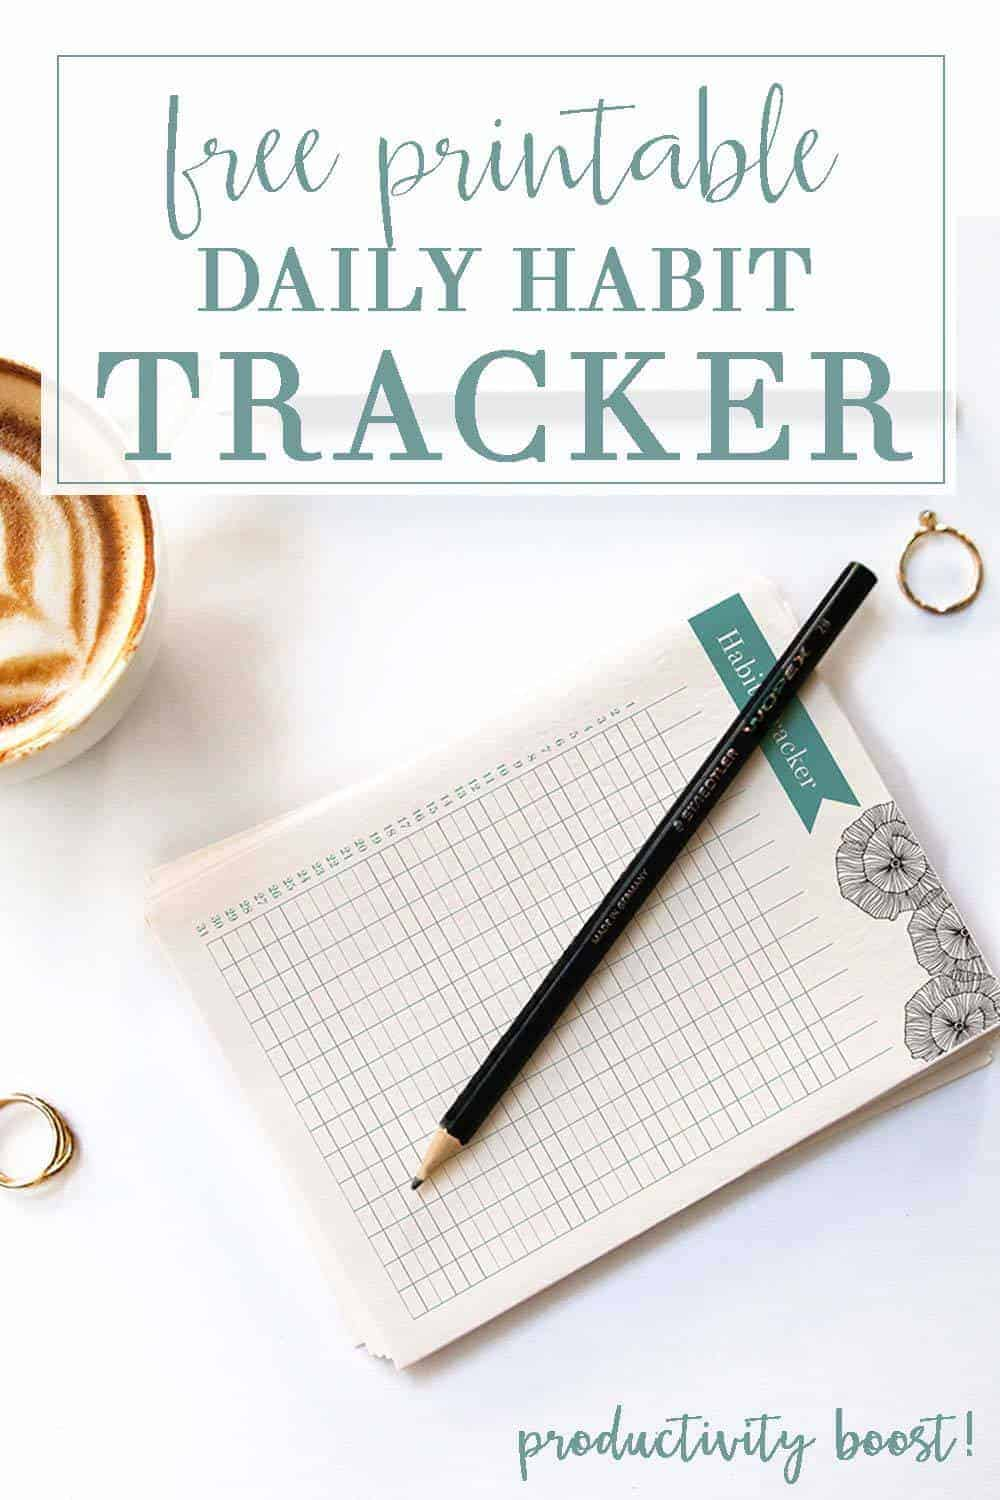 Printable habit tracker on a white background with a coffee, pencil, and rings